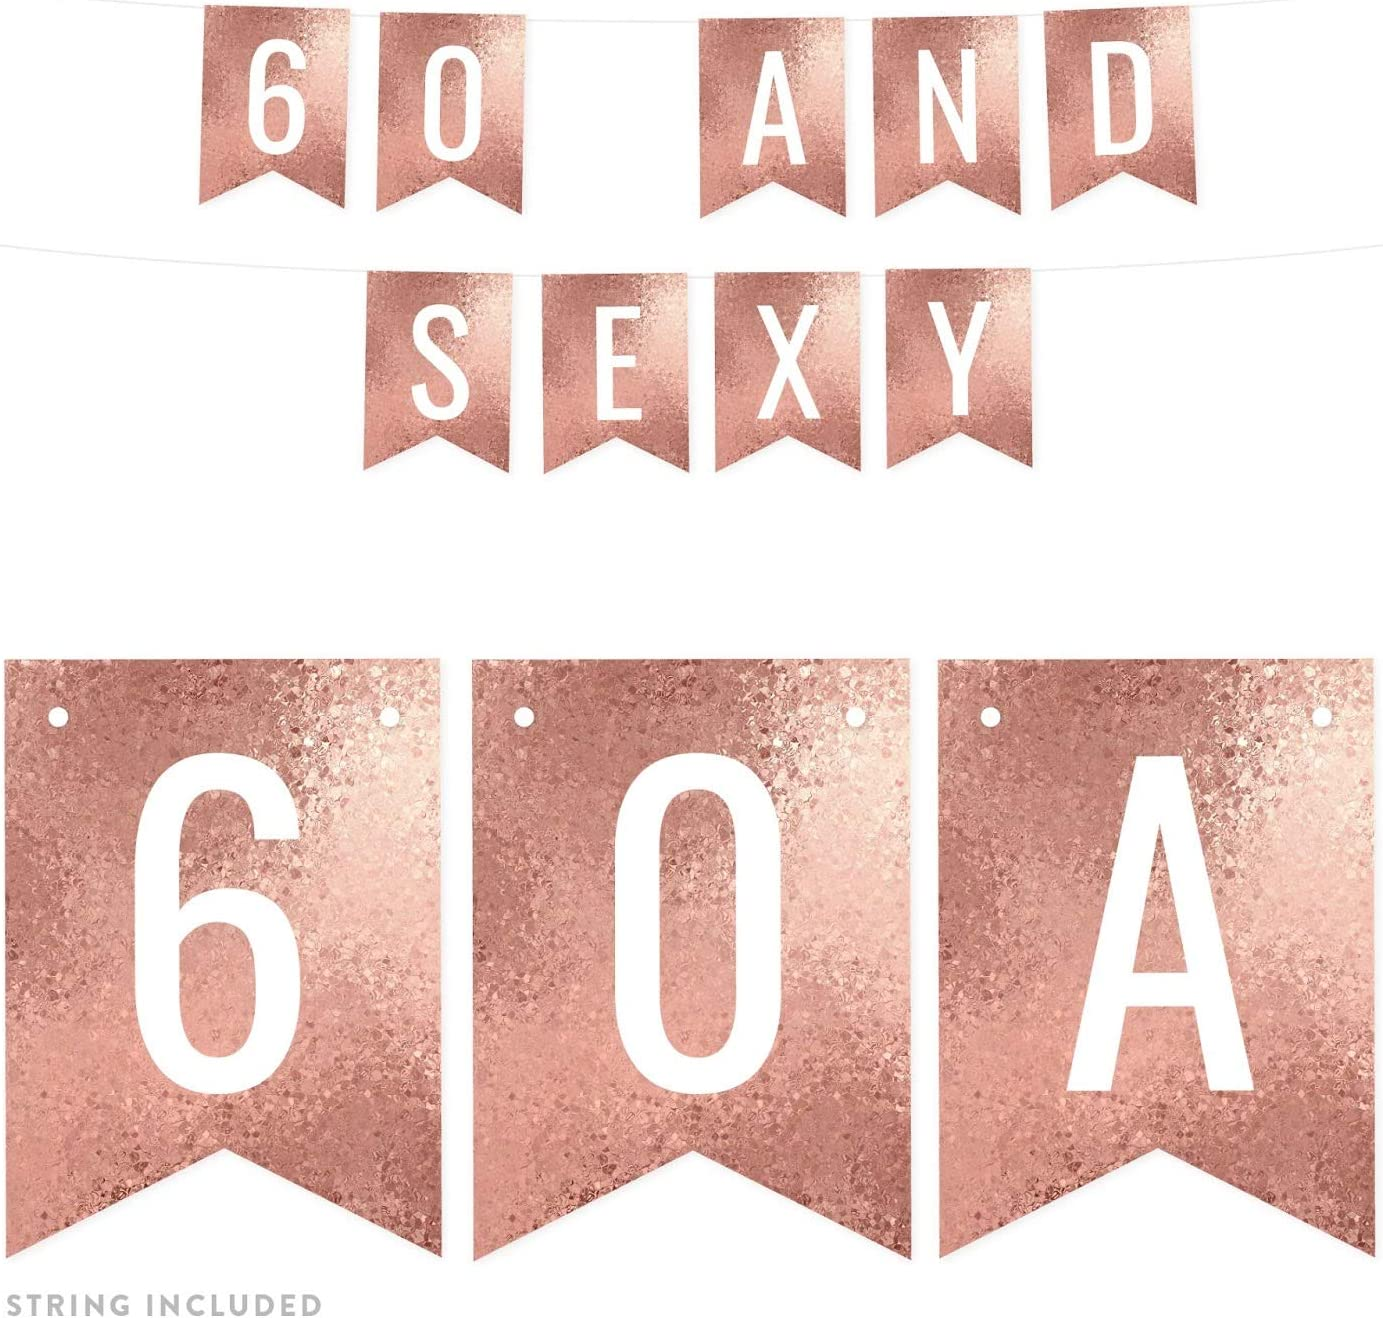 Andaz Press Rose Gold Glitter Mosaic Birthday Party Banner Decorations, 60 and Sexy, Approx 5-Feet, 1-Set, 60th Birthday Milestone Colored Hanging Pennant Decor